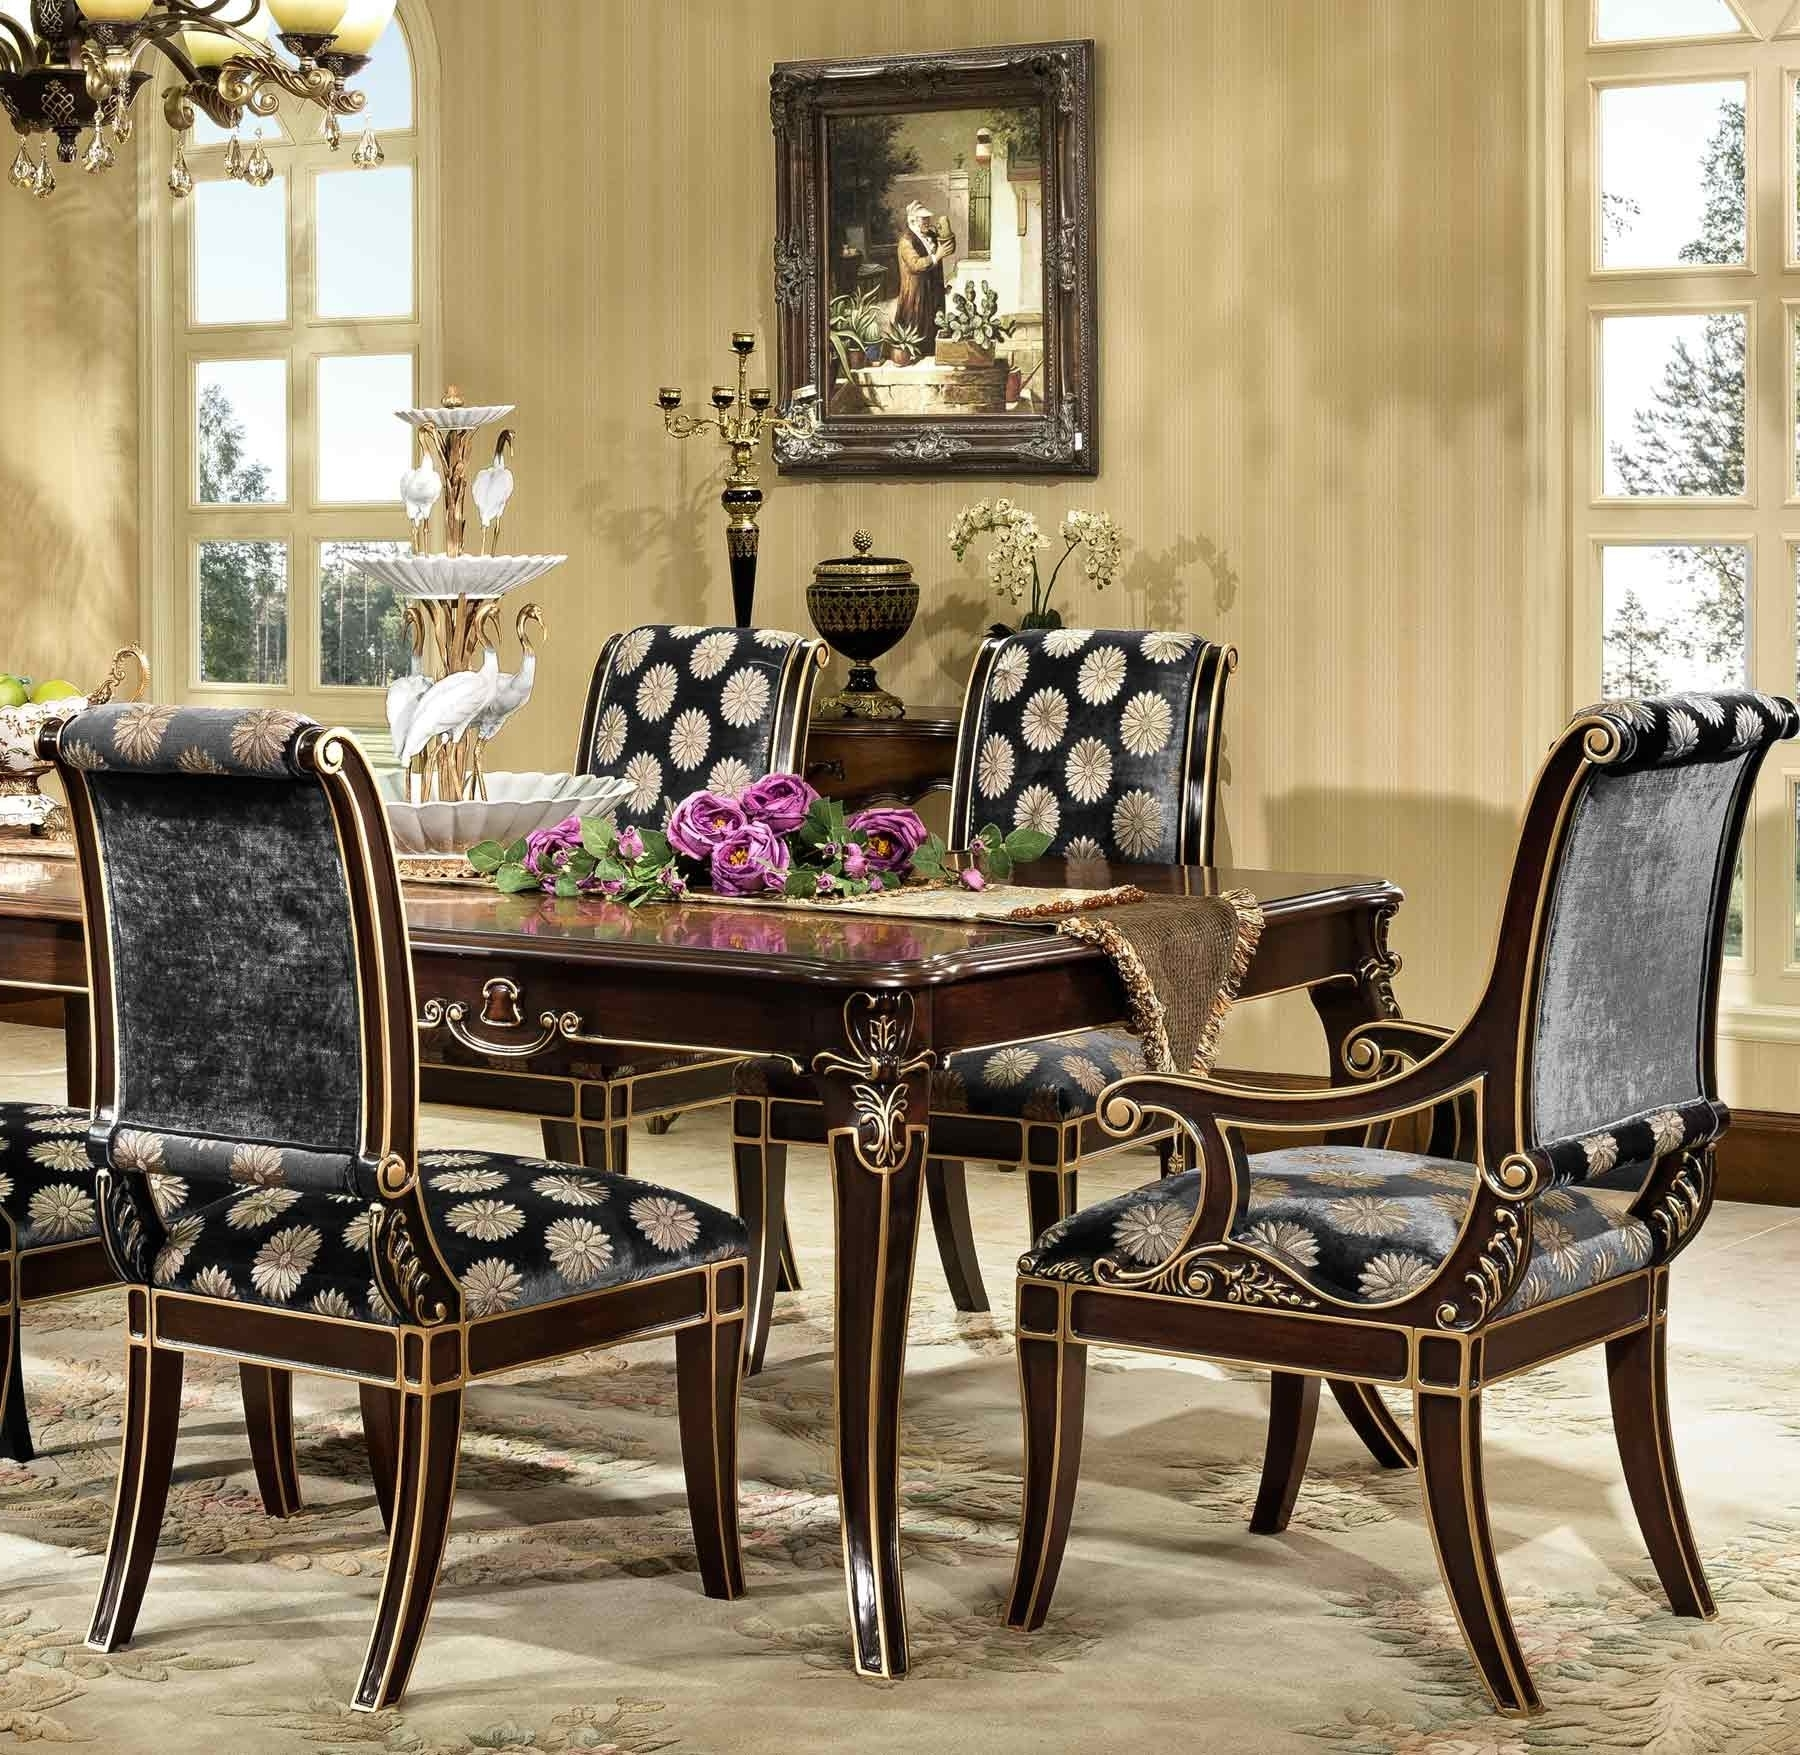 Mayfair Dining Tables Intended For Well Known Mayfair Dining Table – Dining Table – Dining Room (View 11 of 25)